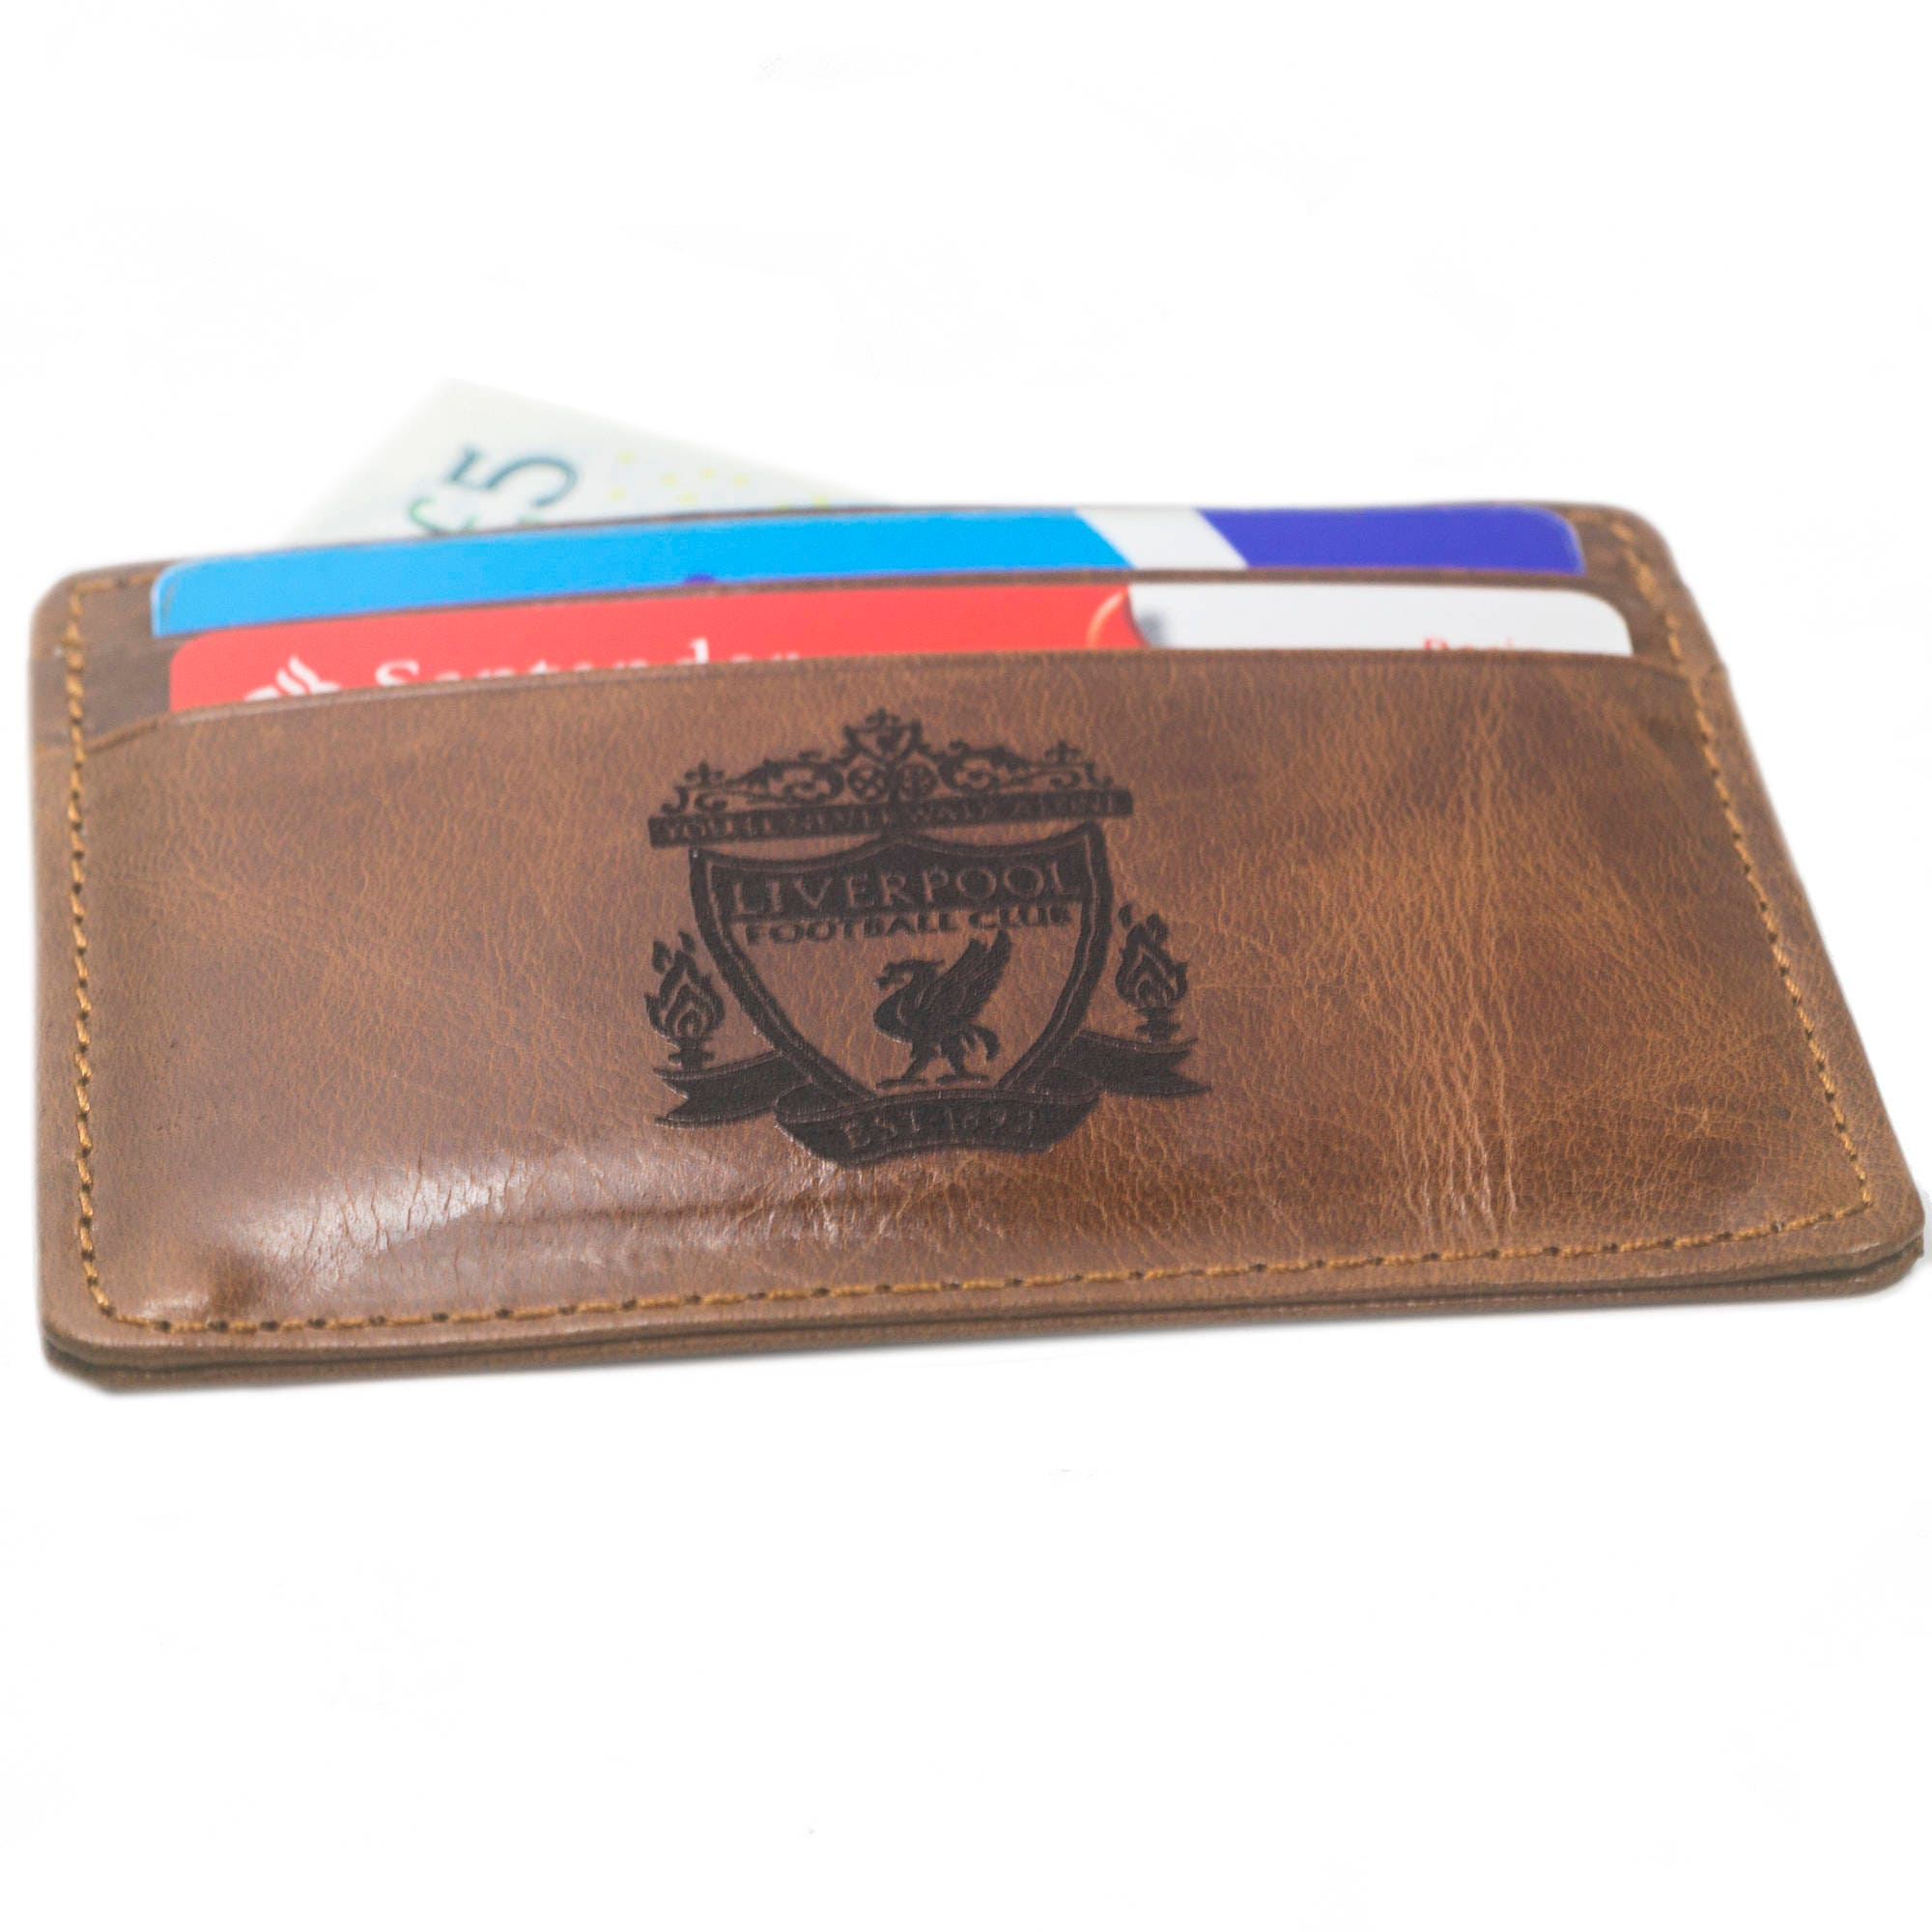 LIVERPOOL F.C. Real Leather Credit ID Business Card Holder Oyster Liverpool Club